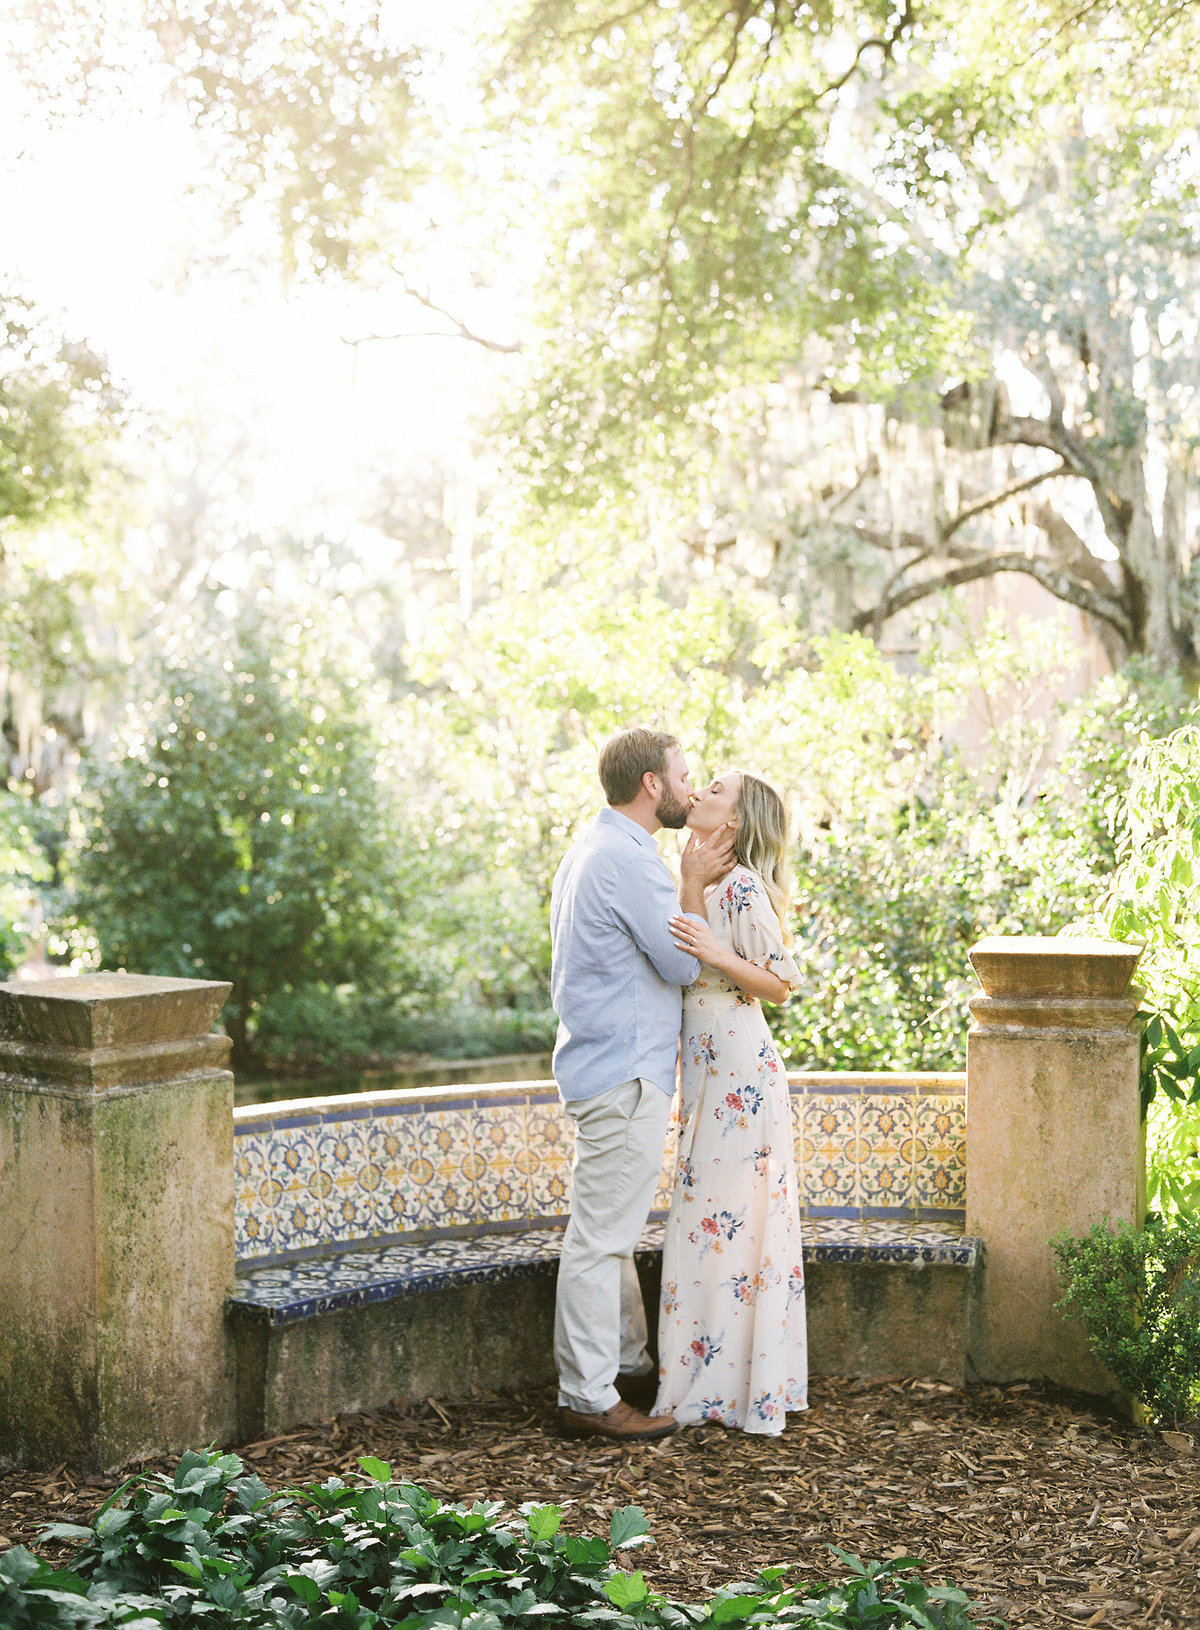 Bok_Tower_Garden_Film_Fine_Art_Engagement_Session-27